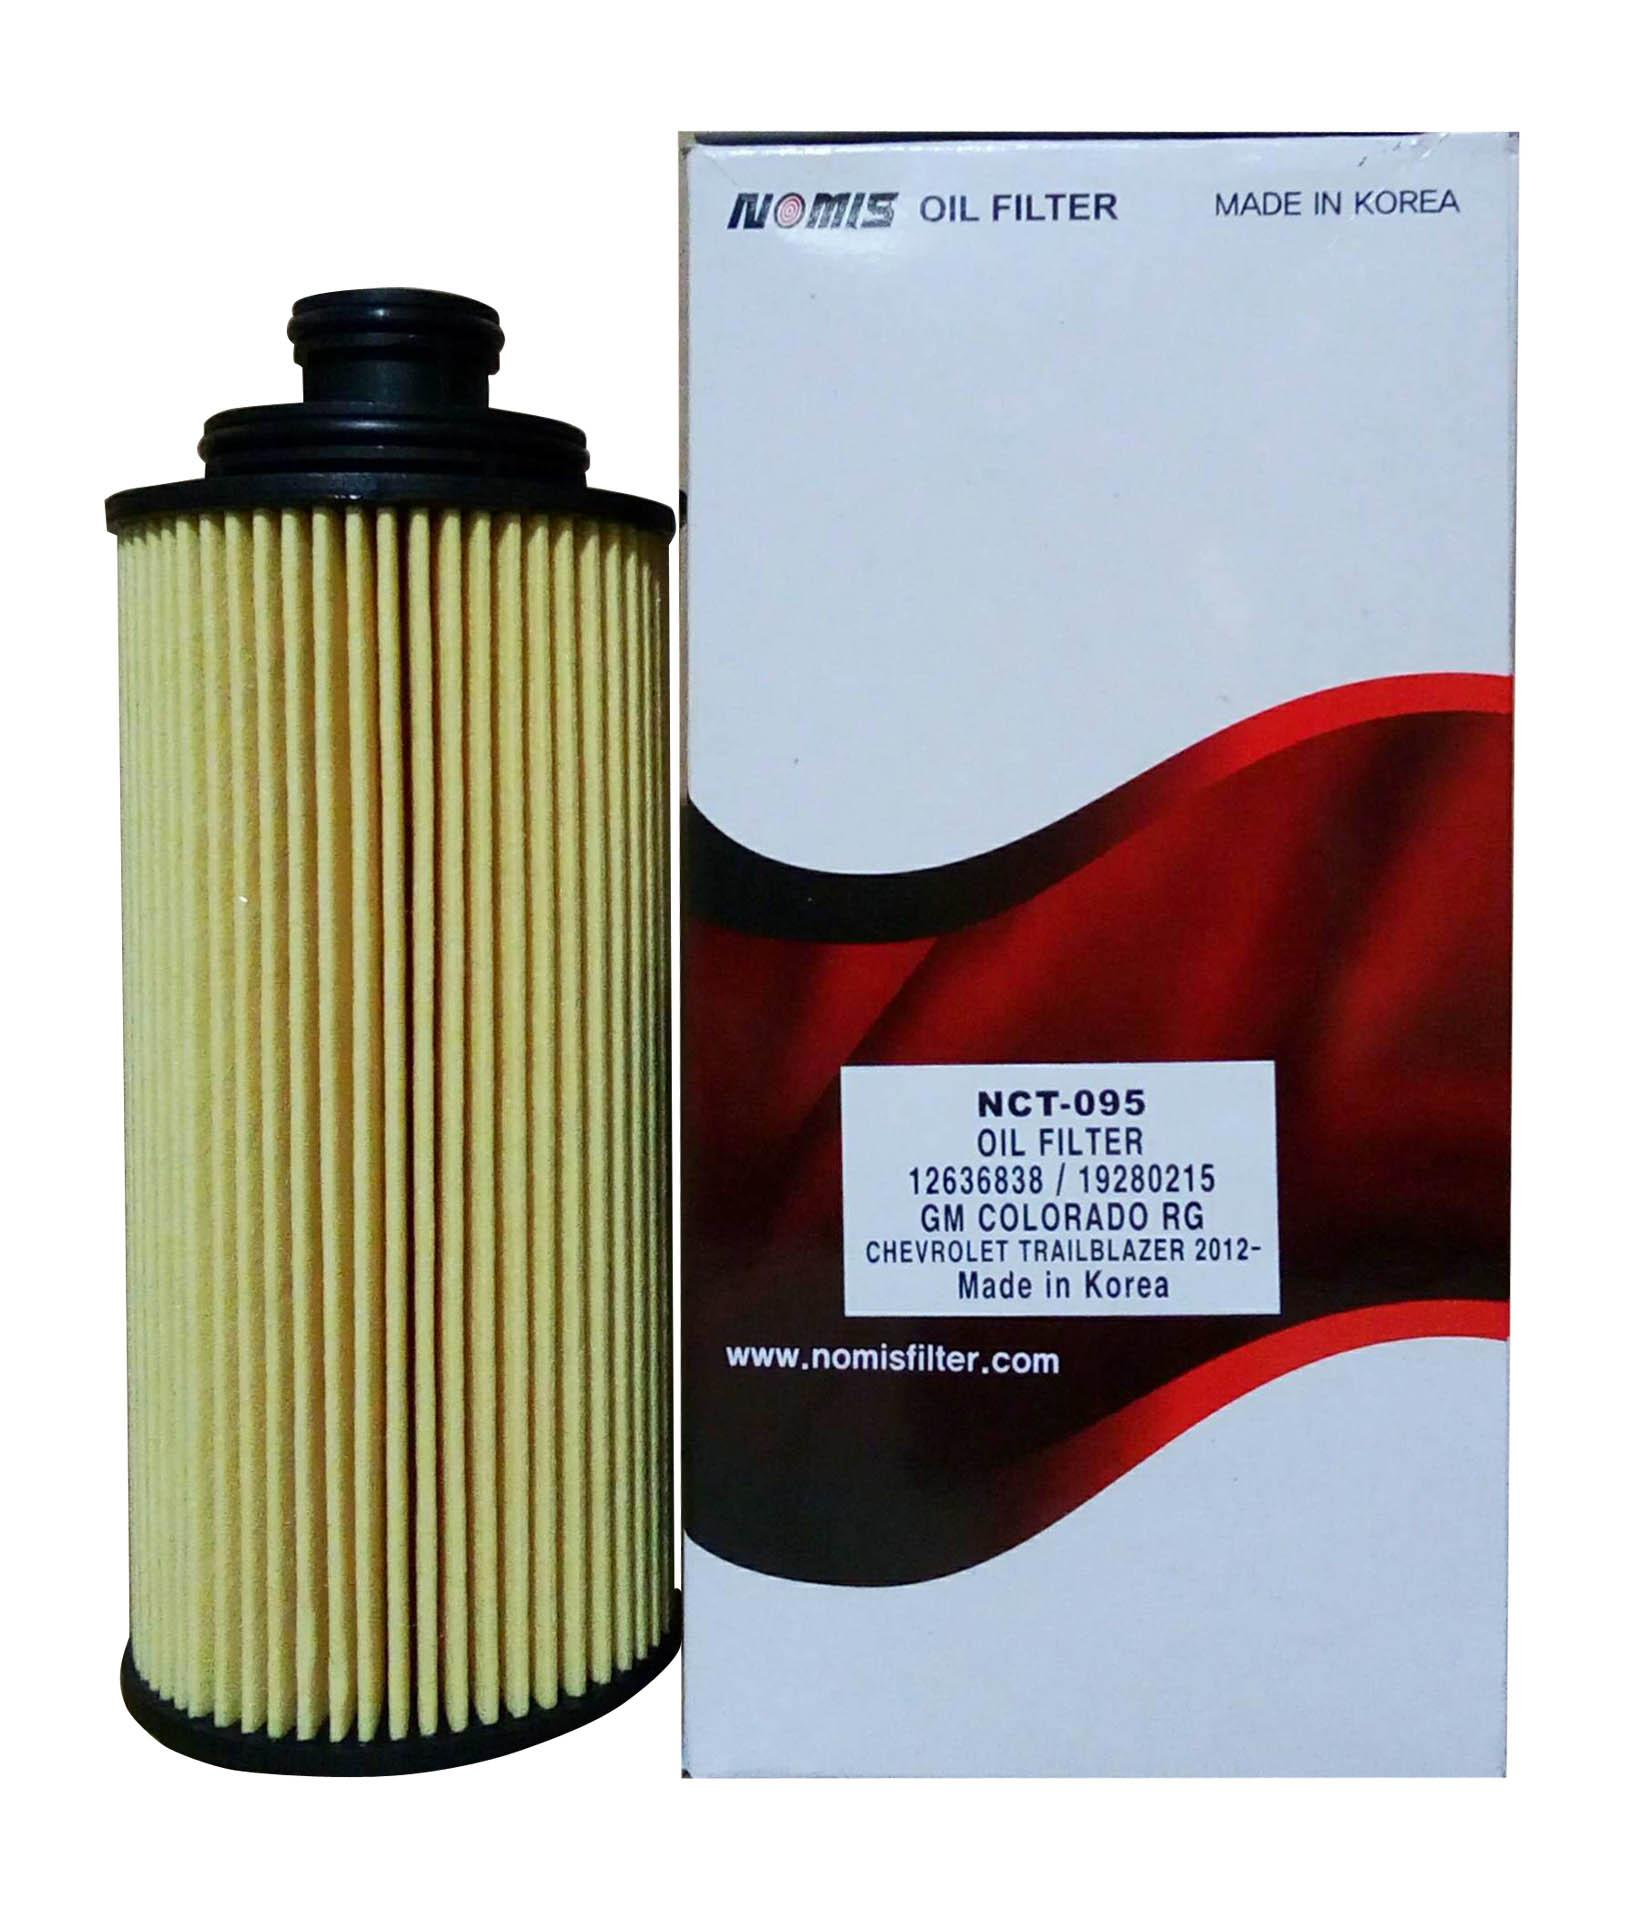 Oil Filter For Sale Adapter Online Brands Prices 4 Wheeler Fuel Nomis Nct 095 Chevrolet Trailblazer 2012 To 2018